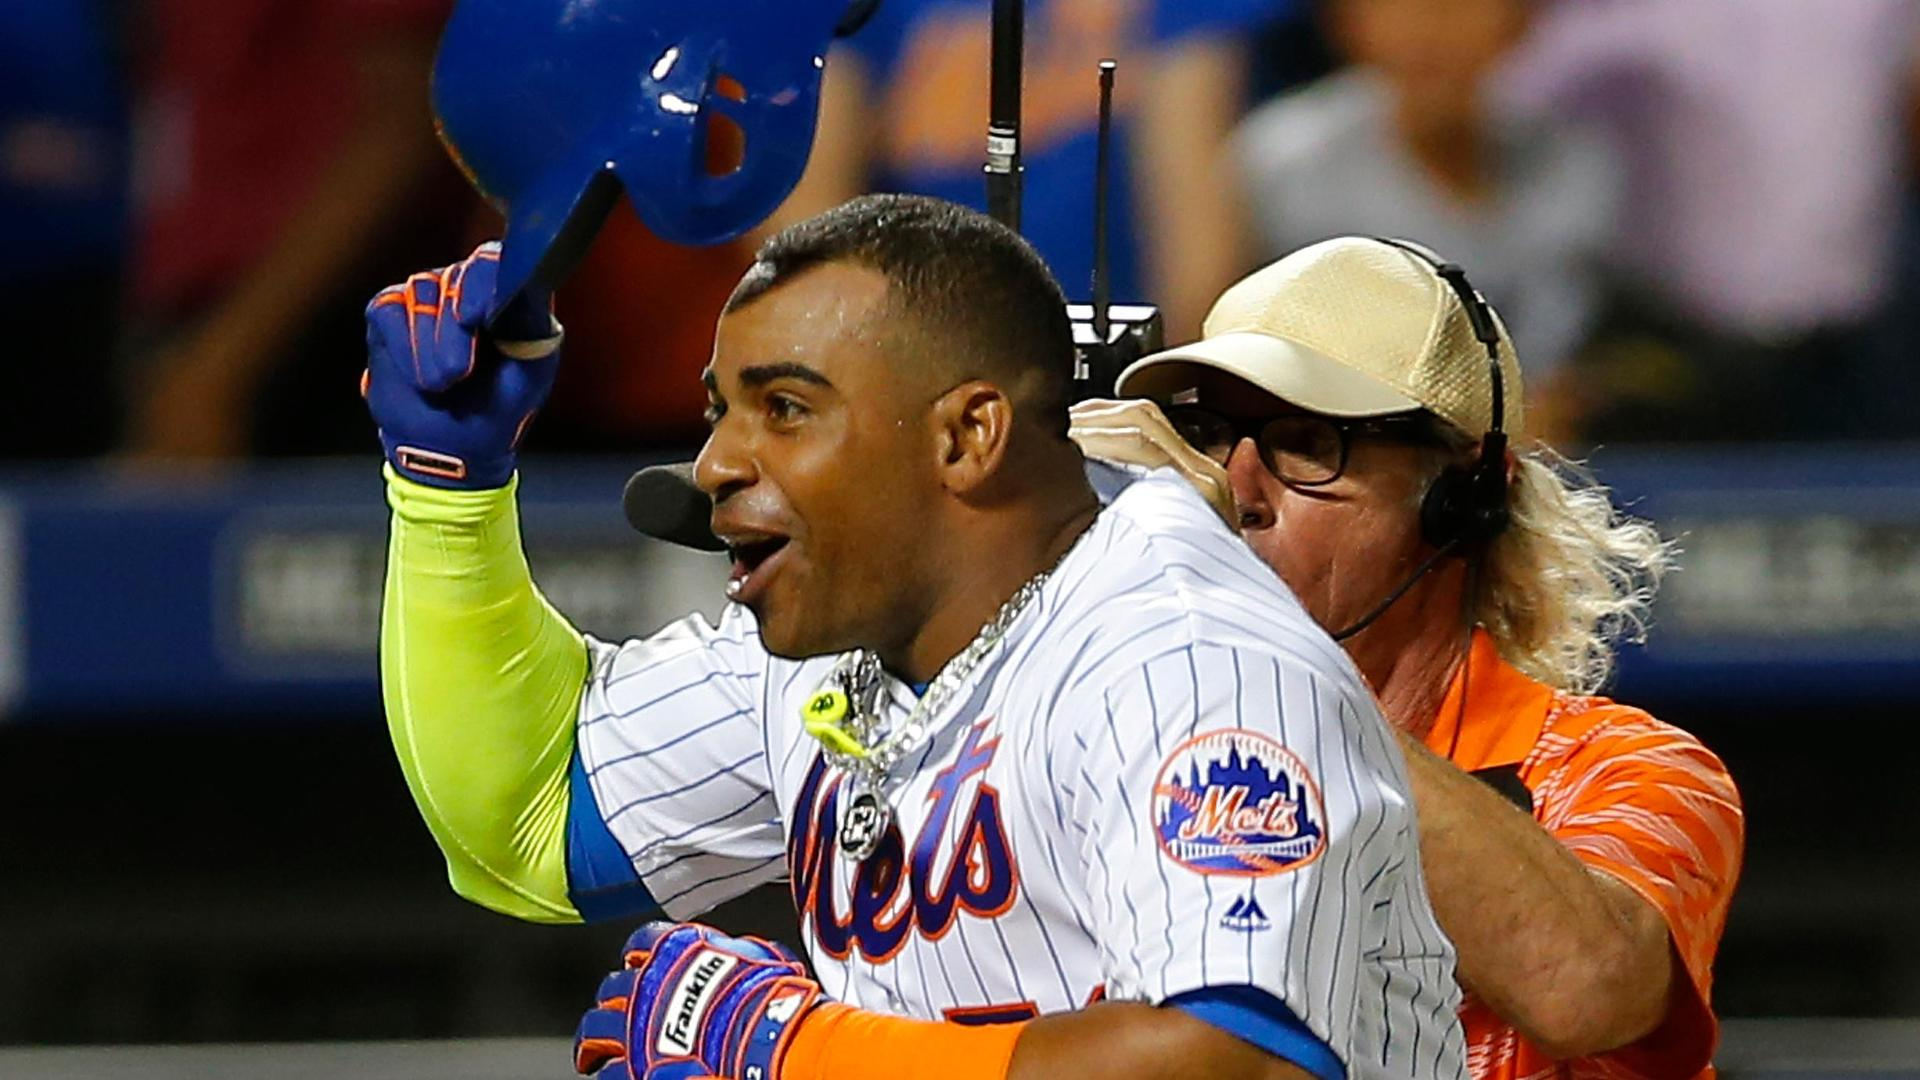 Cespedes sends everyone home with walk-off blast in 10